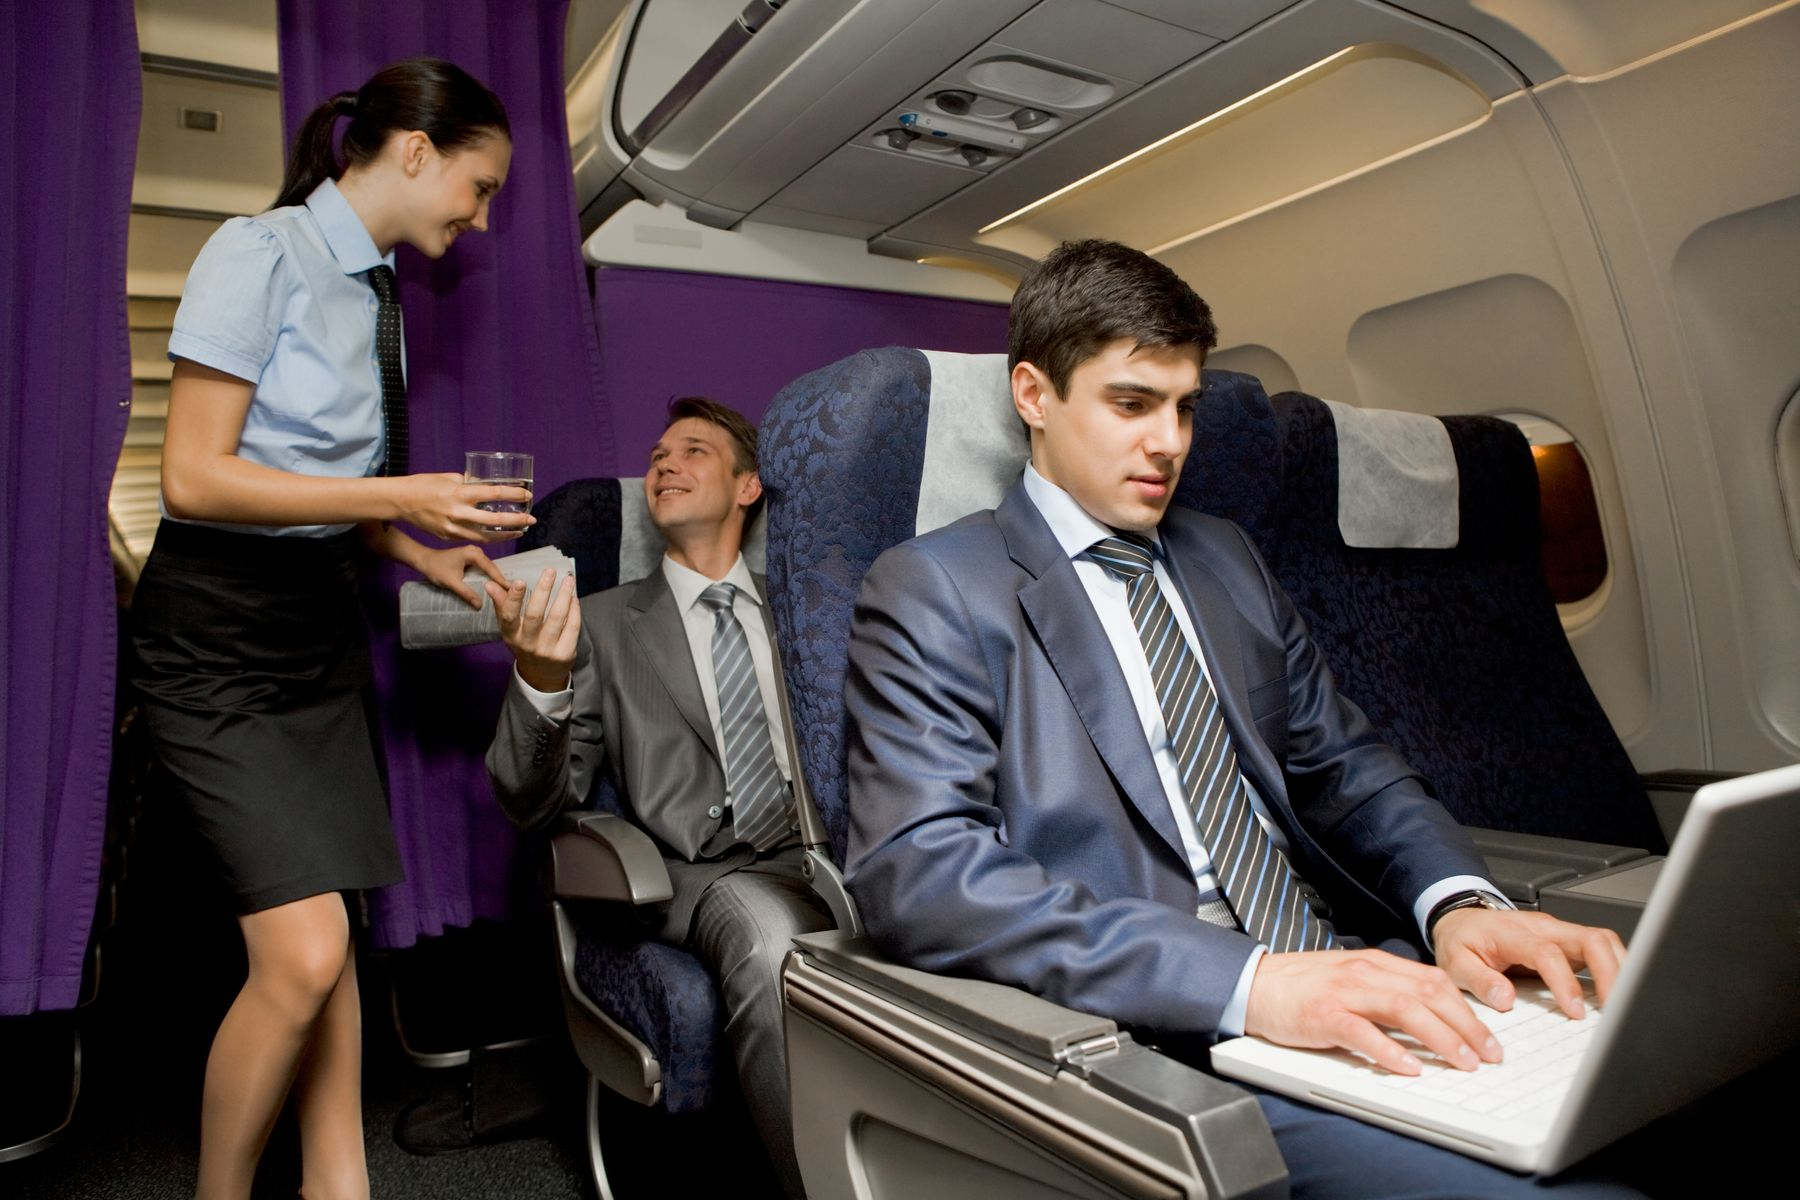 American Airlines business class passenger